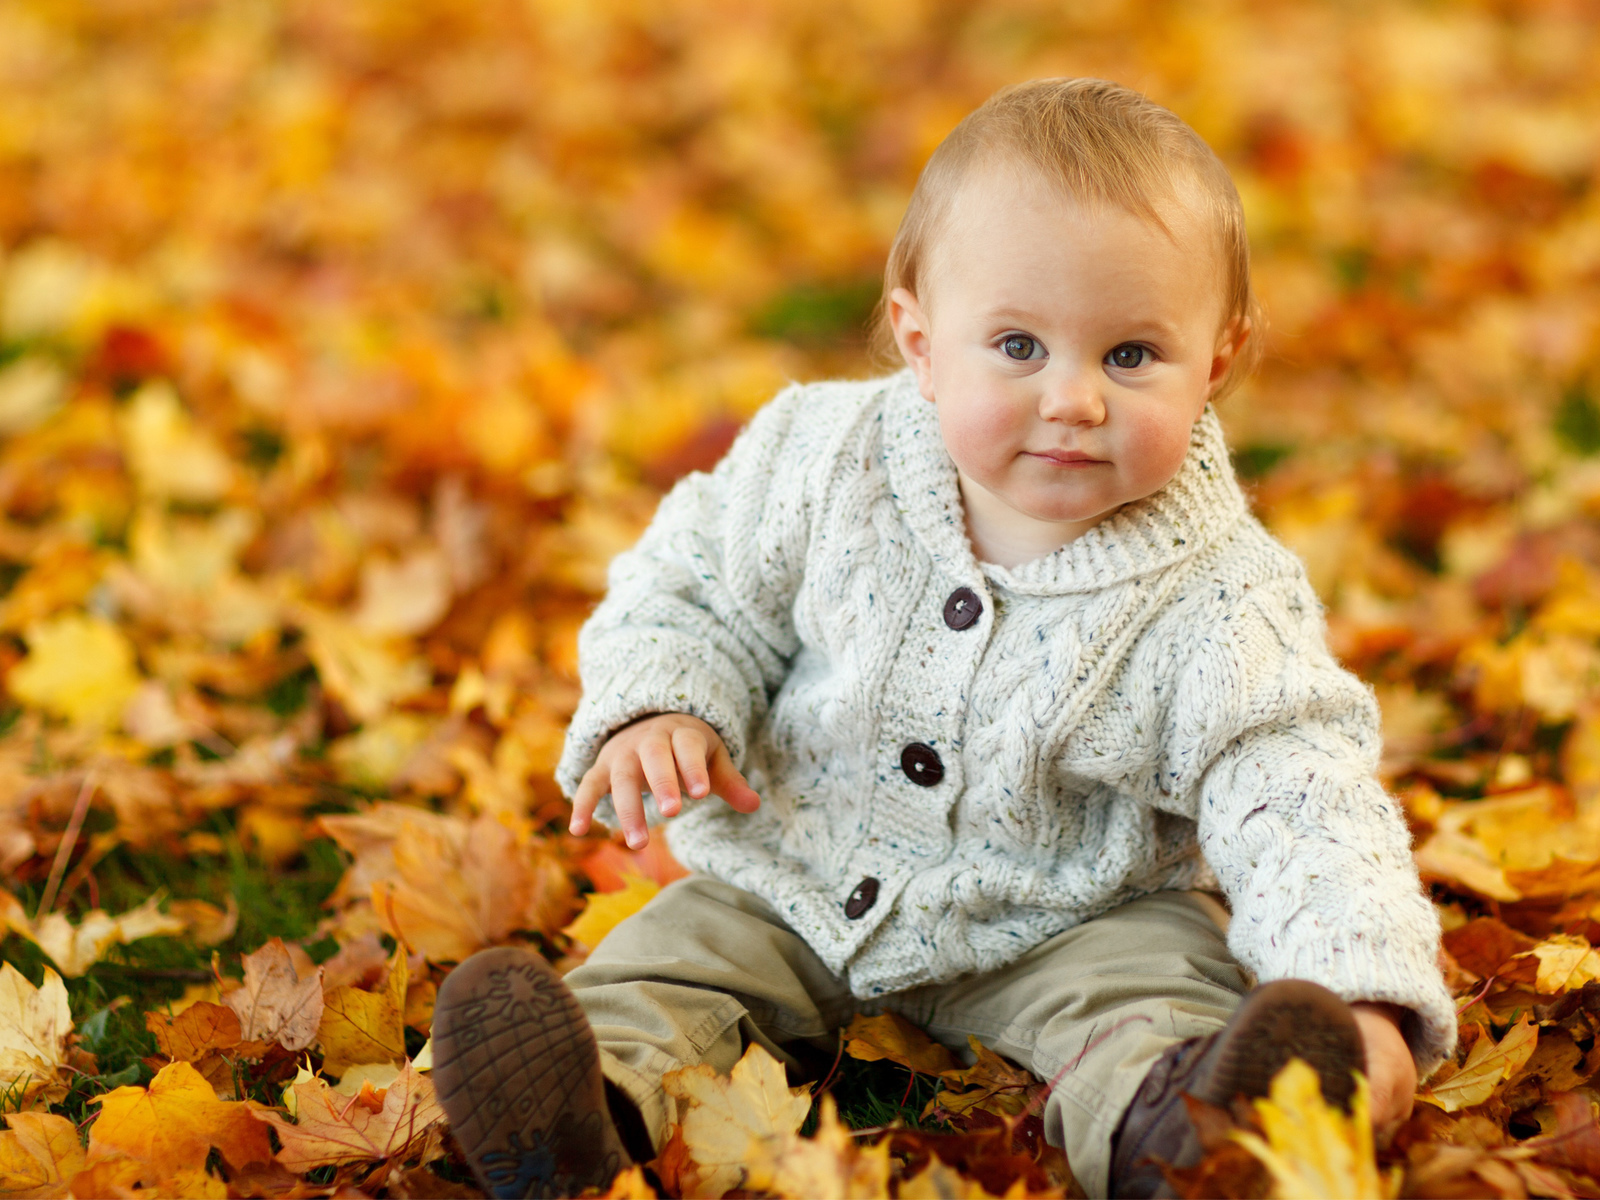 Cute Baby Boy Autumn Leaves (1600x1200)